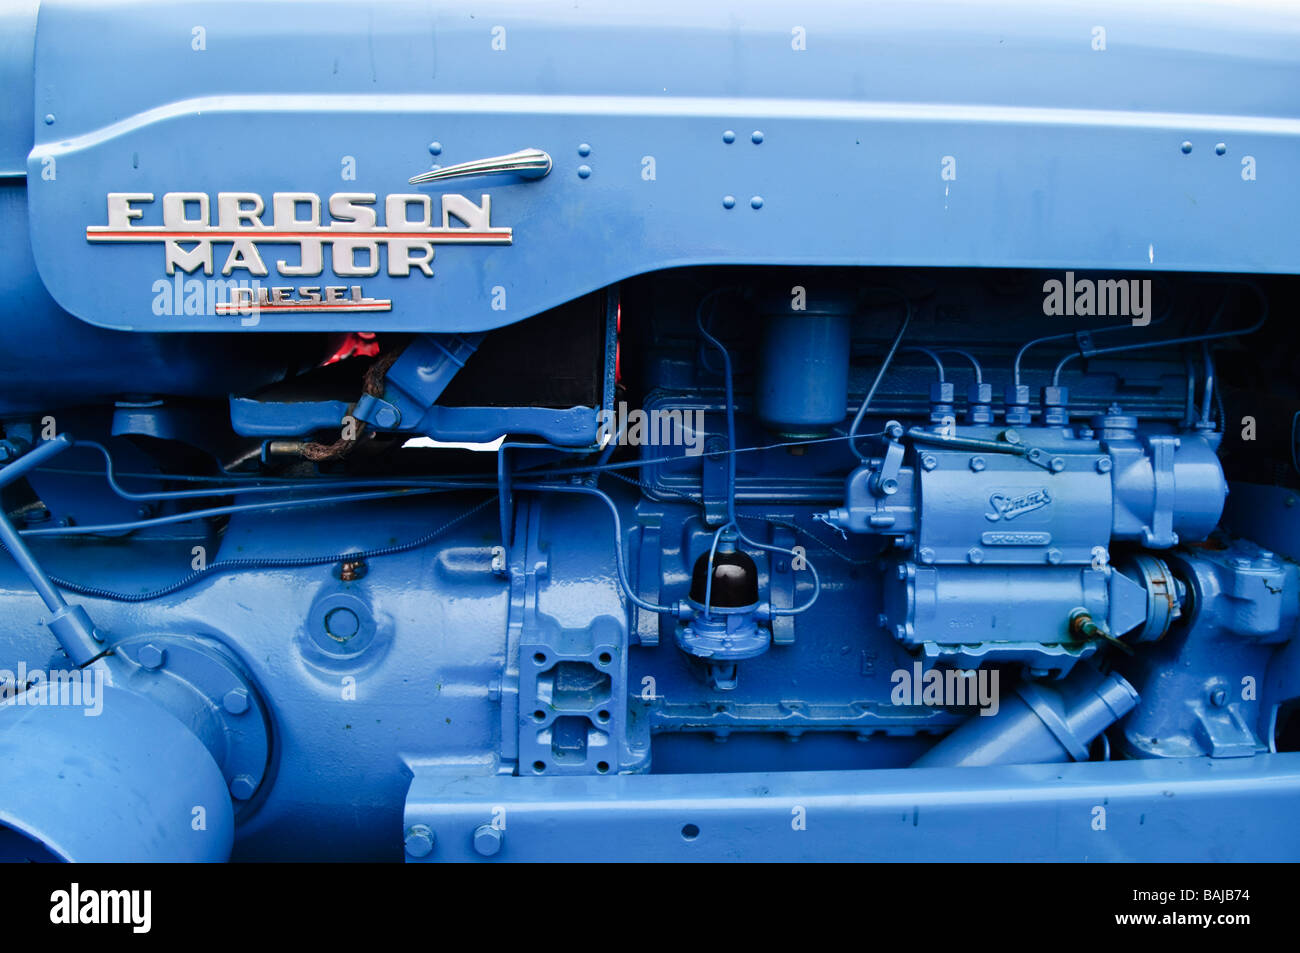 hight resolution of side view of the diesel engine of a blue fordson major tractor stock image